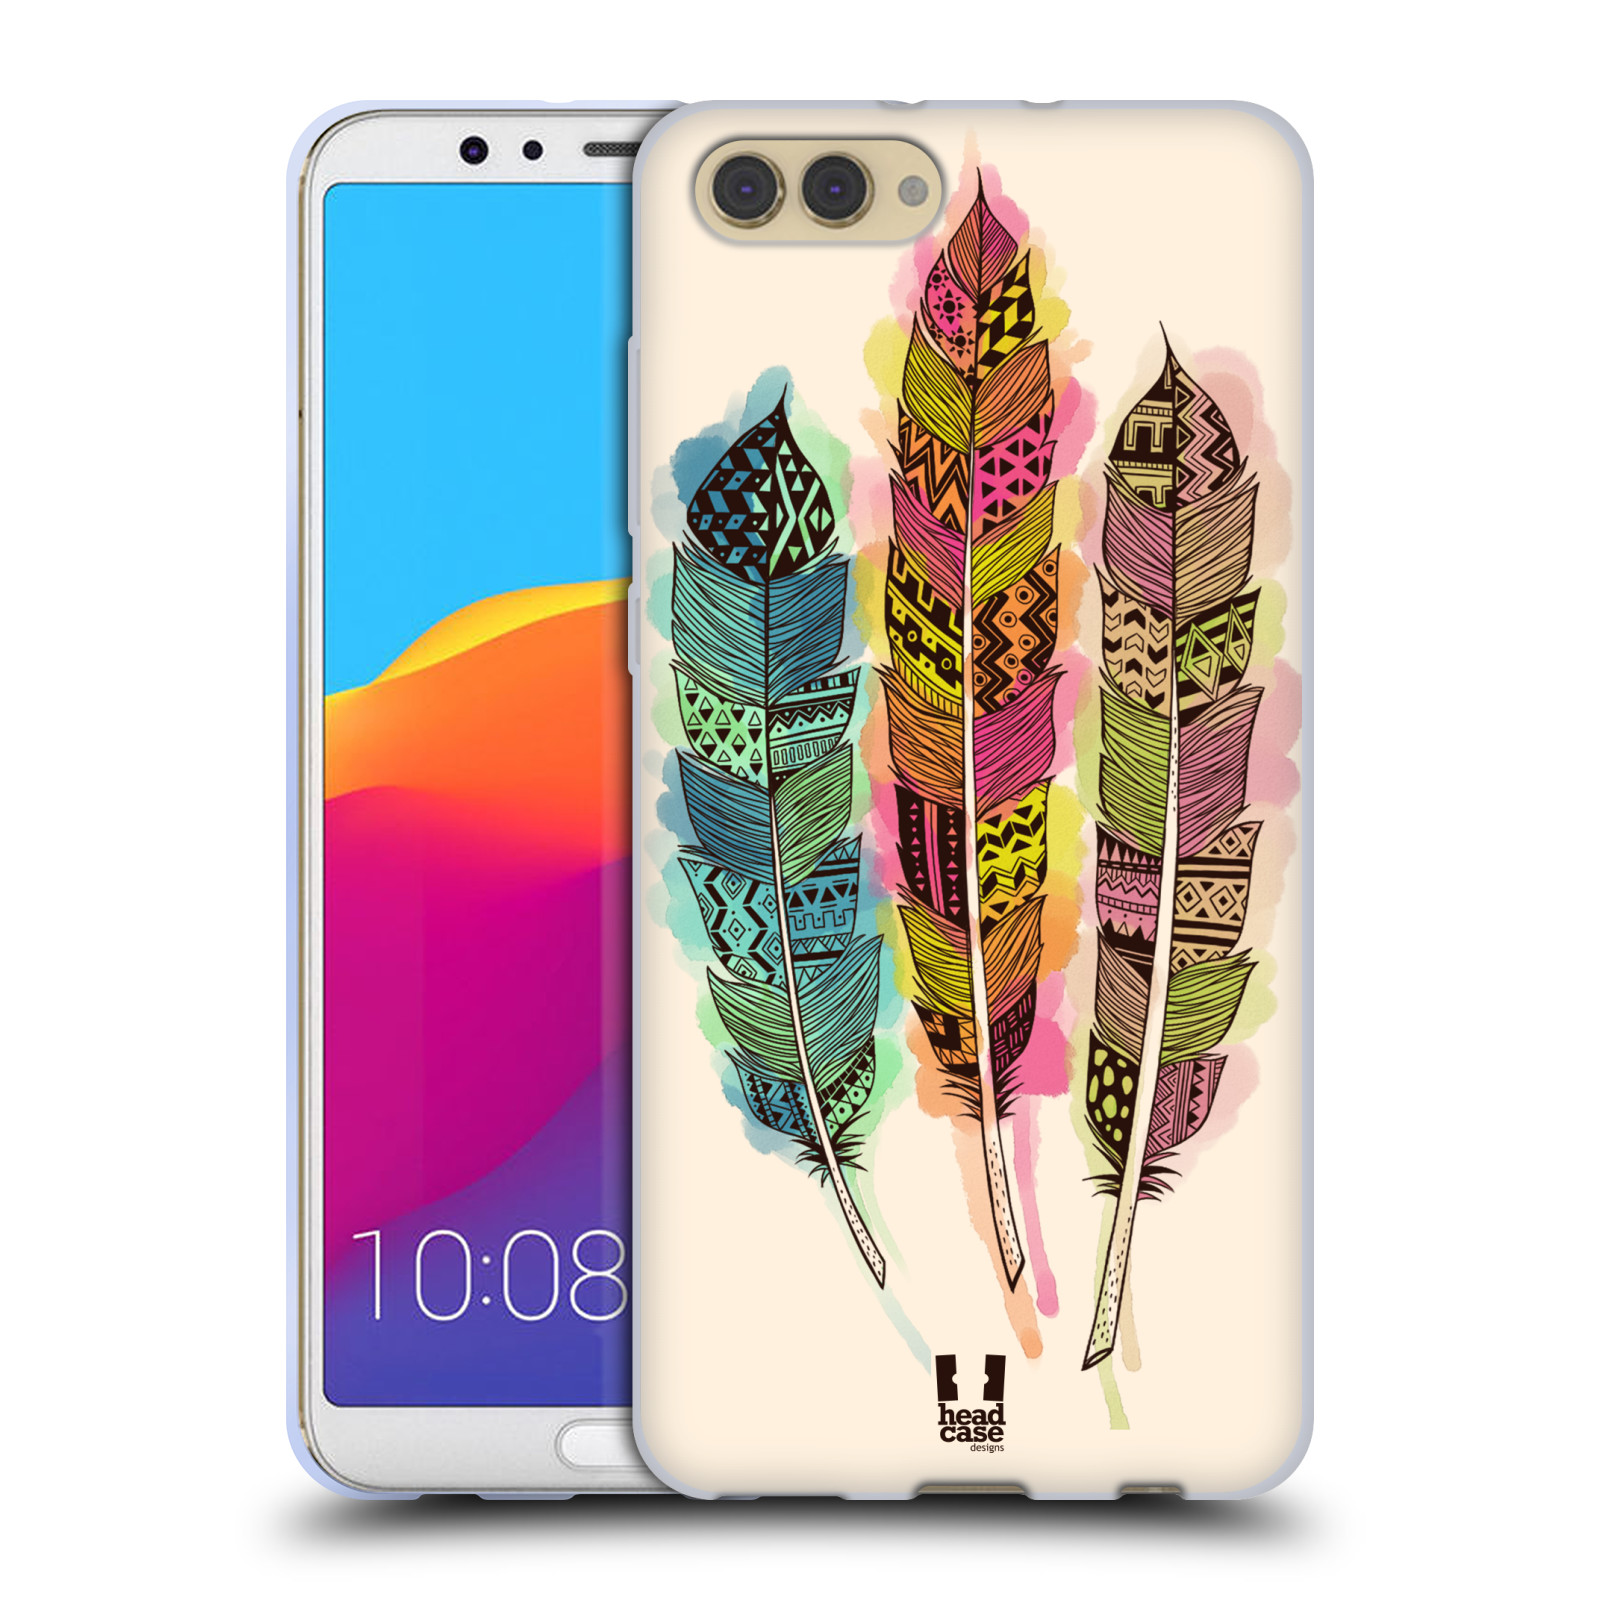 Silikonové pouzdro na mobil Honor View 10 - Head Case - AZTEC PÍRKA SPLASH